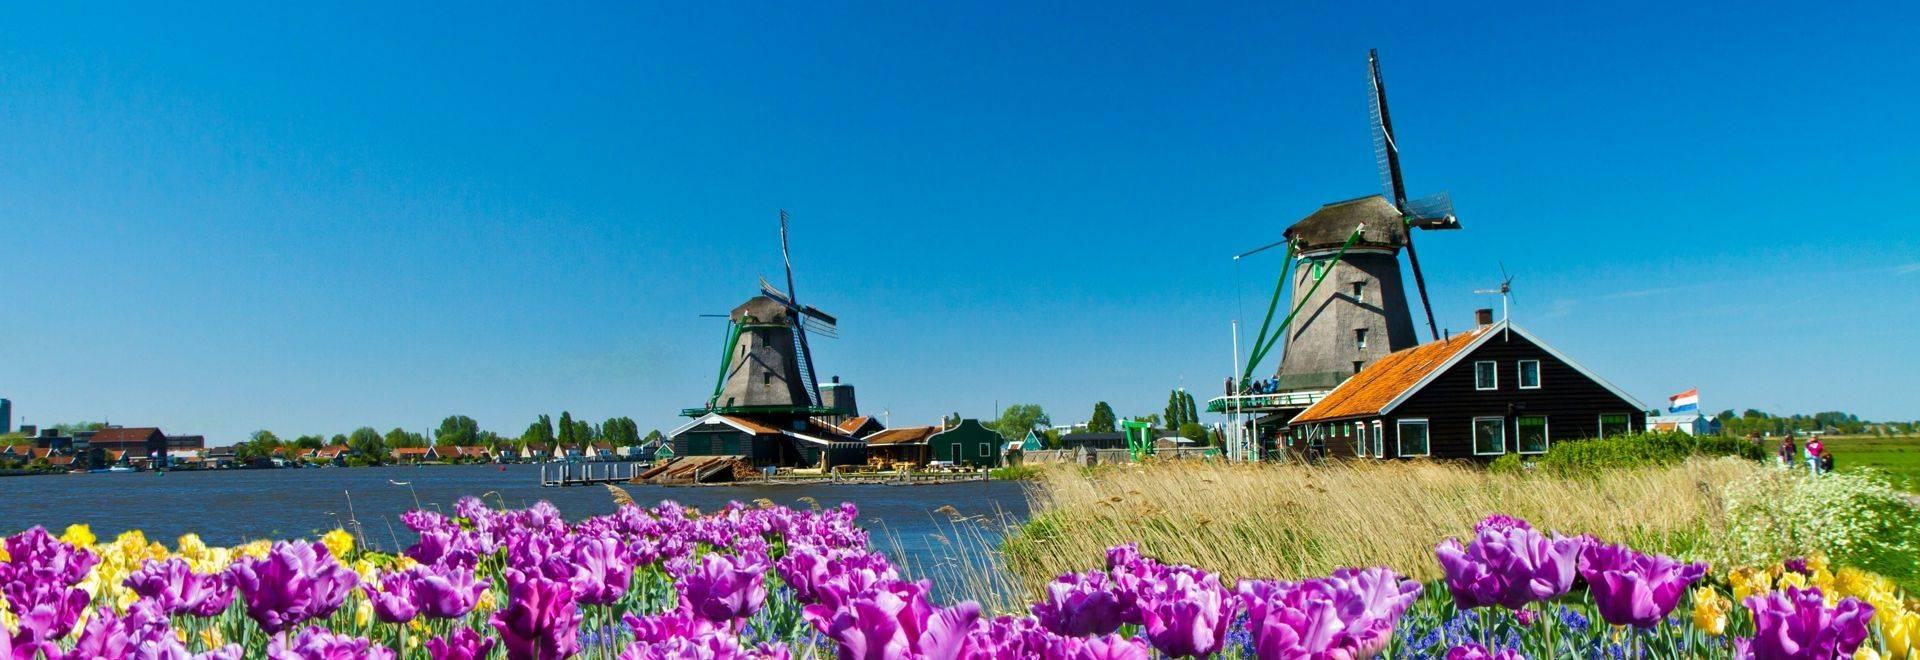 Shutterstock 77821972 Experience The Land Of The Windmills